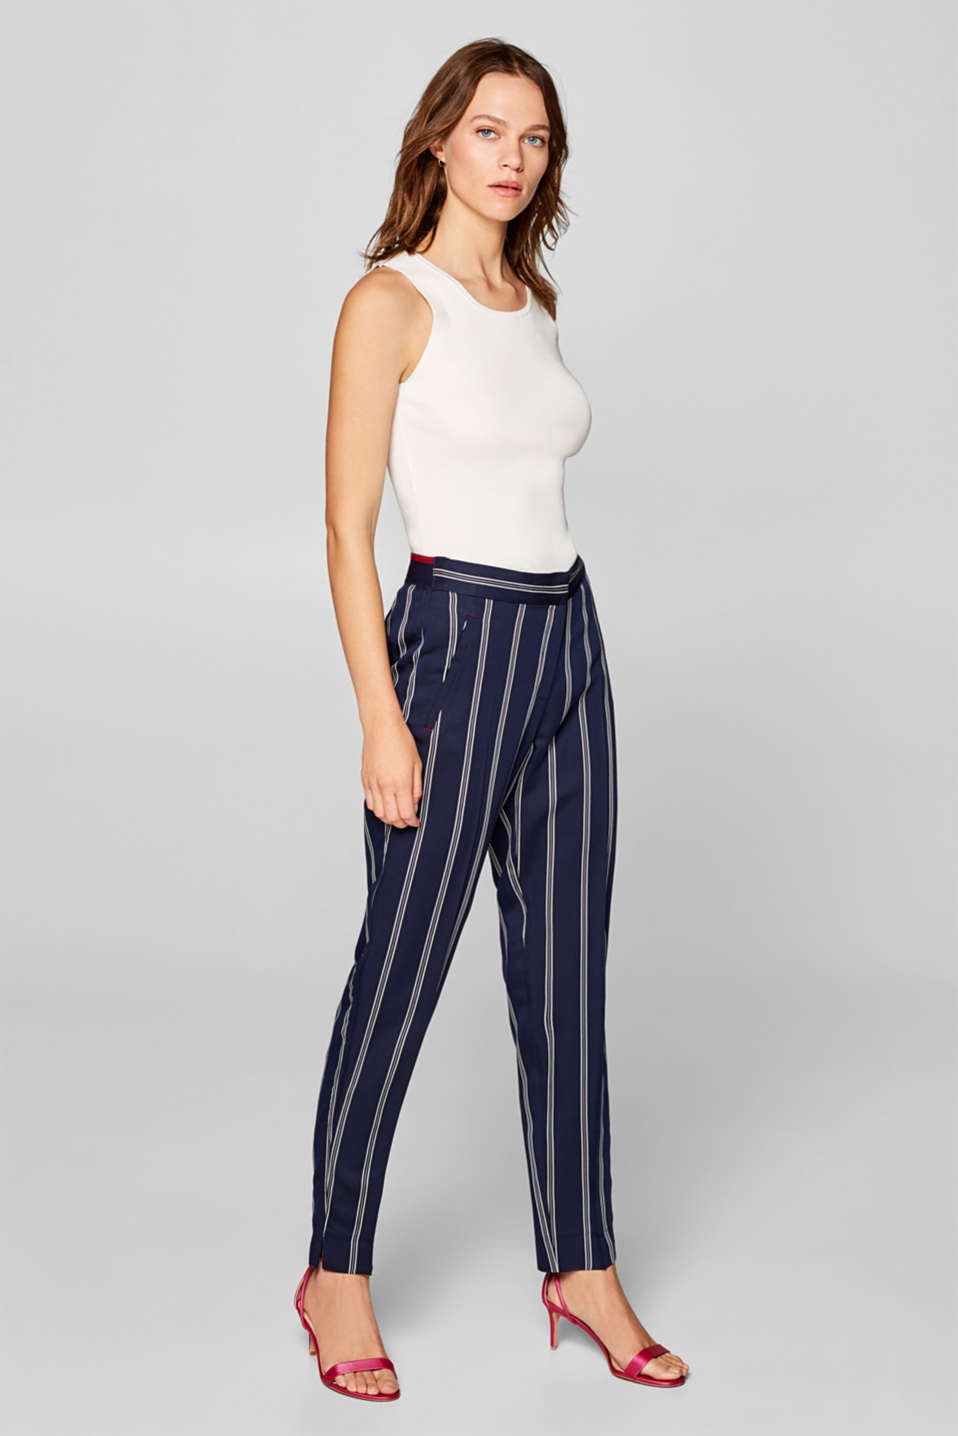 Esprit - Stripe detail chinos with an elasticated waistband